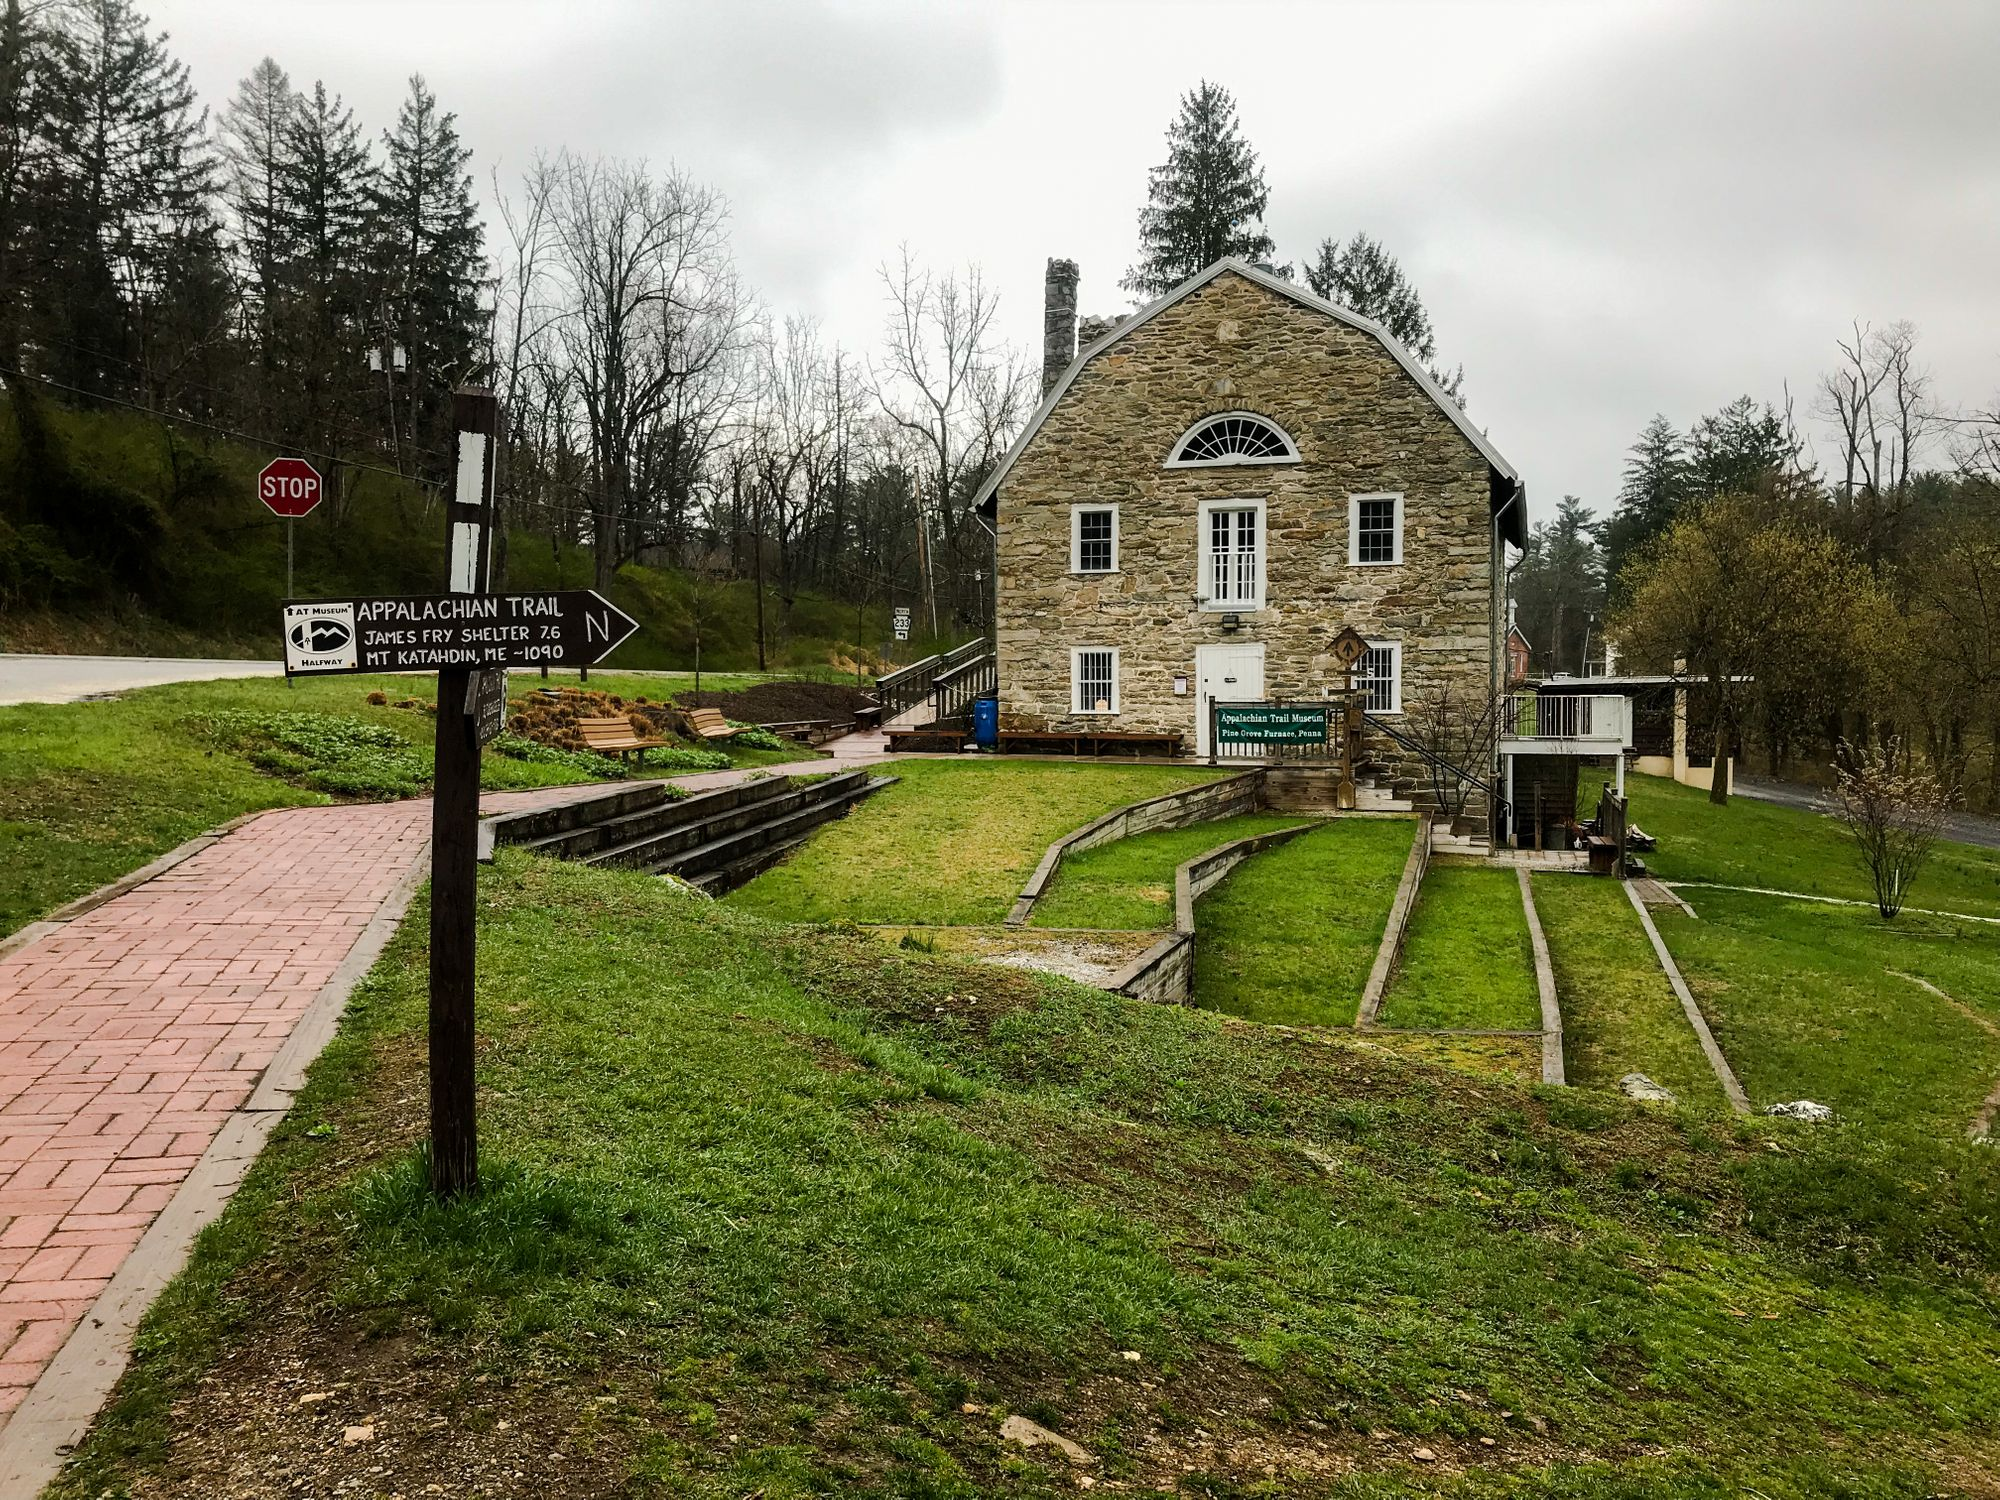 Appalachian Trail Museum at Pine Grove Furnace